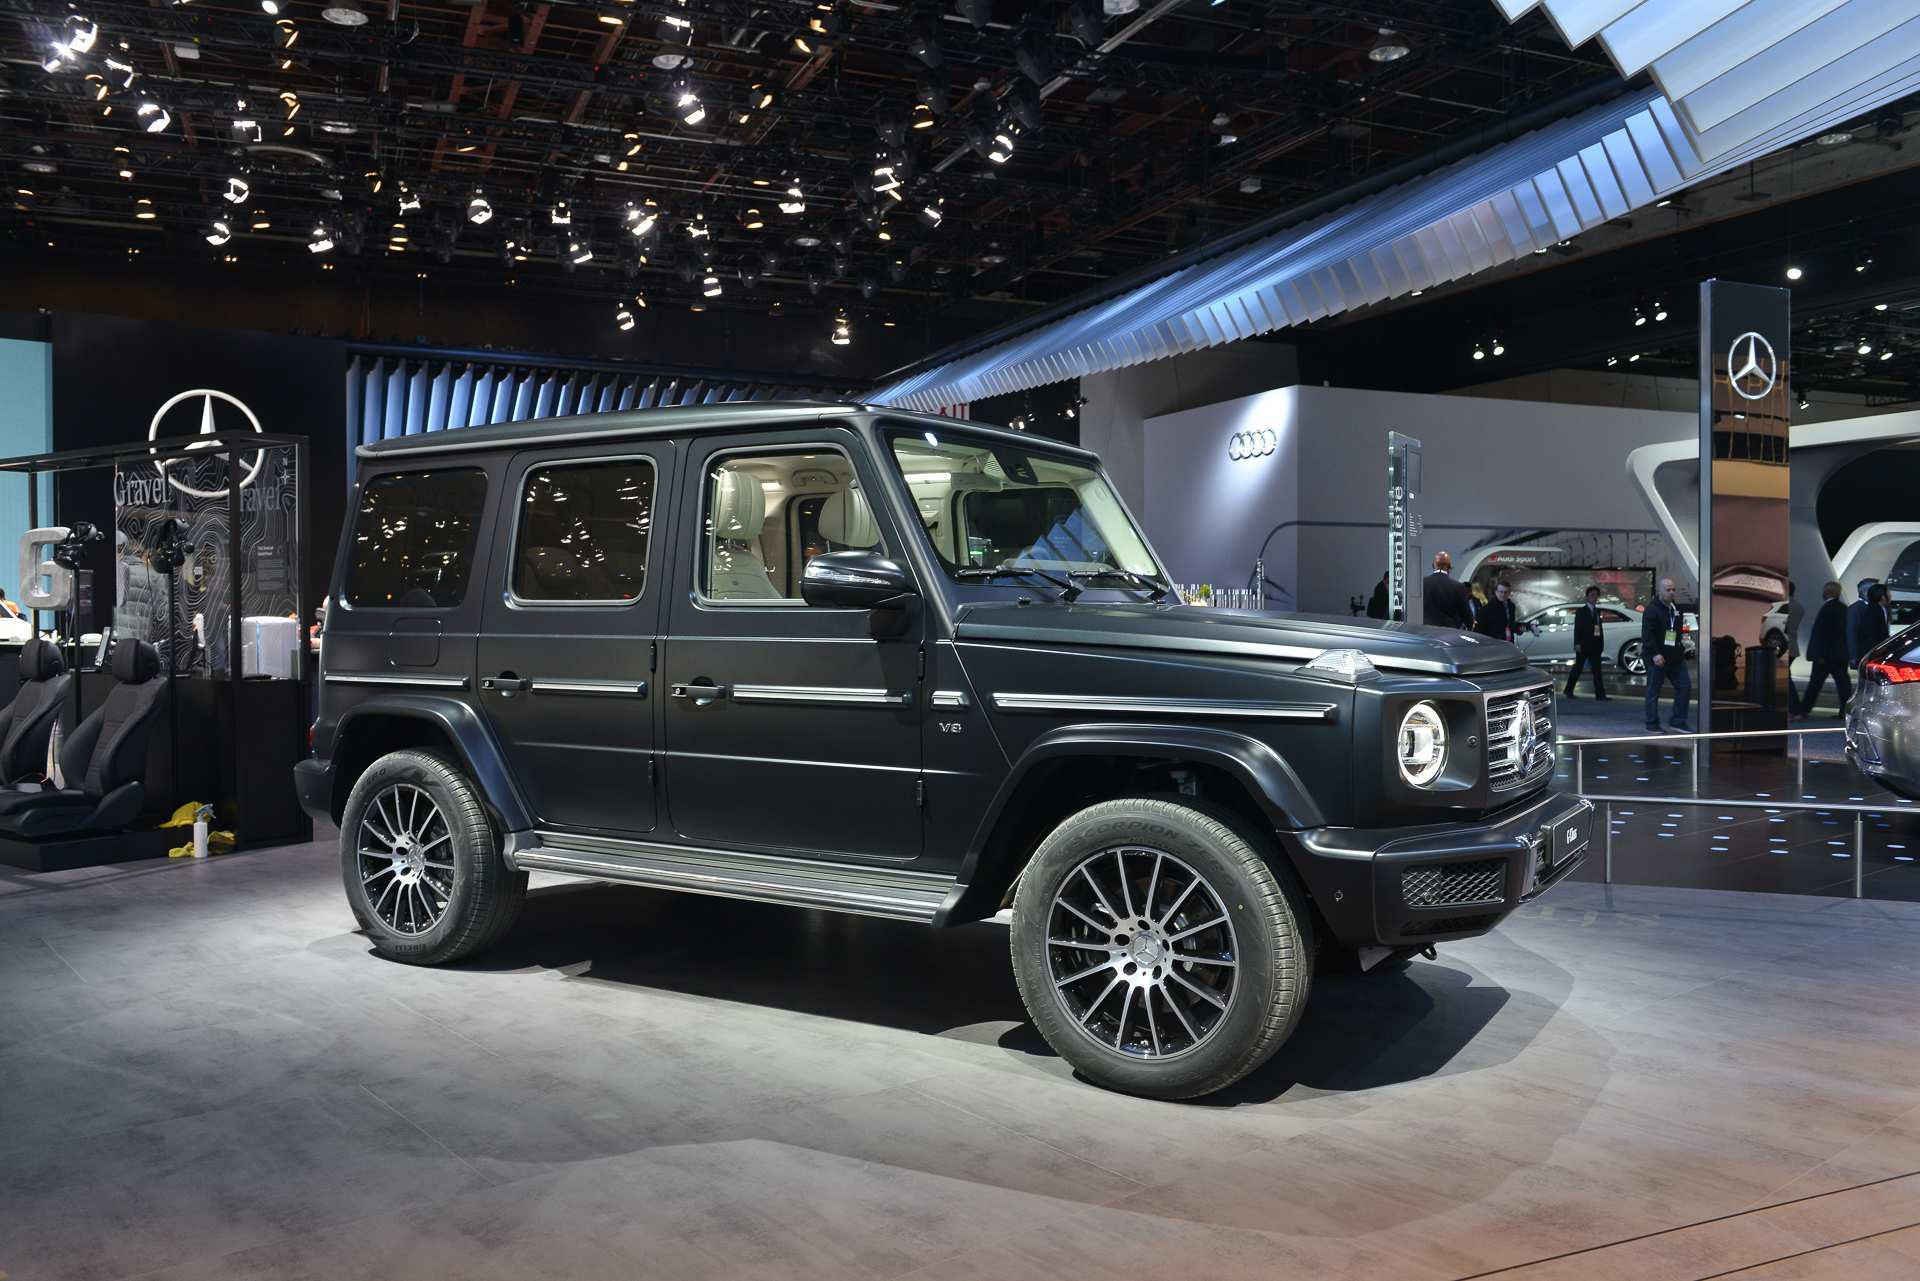 46 Best Review G550 Mercedes 2019 New Concept with G550 Mercedes 2019